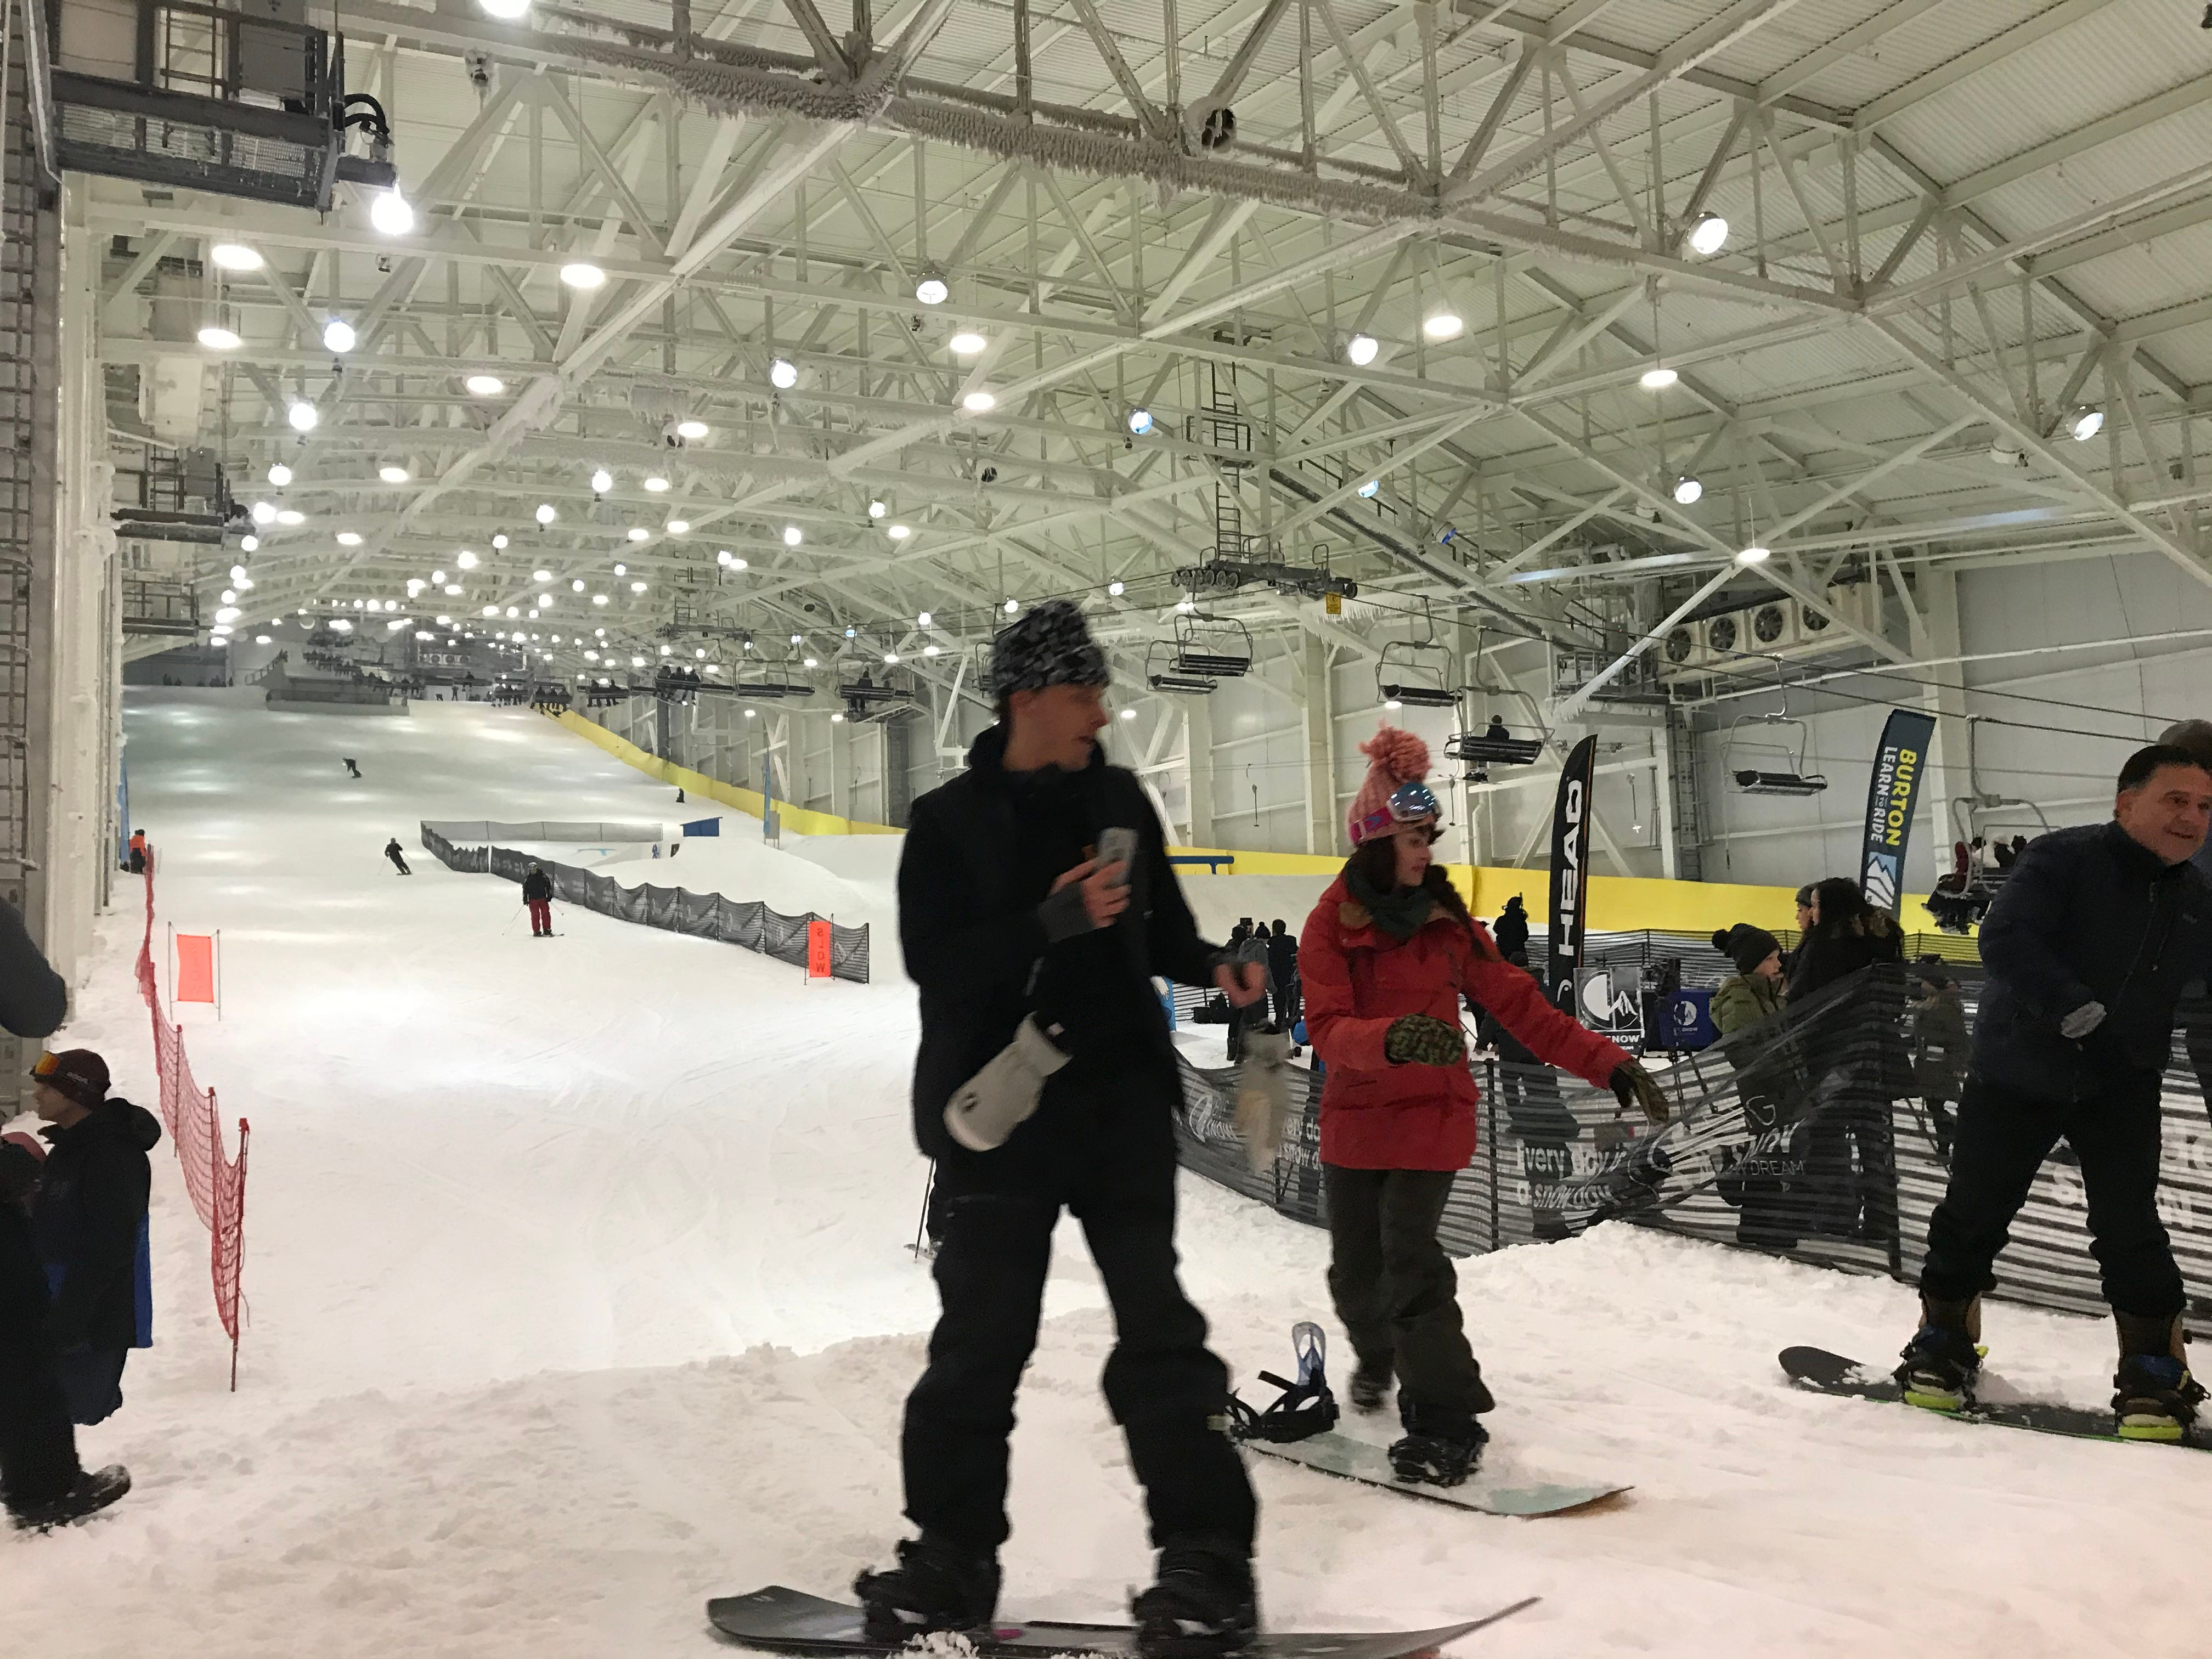 'The snow is perfect:' Indoor ski slope opens at New Jersey's American Dream mall